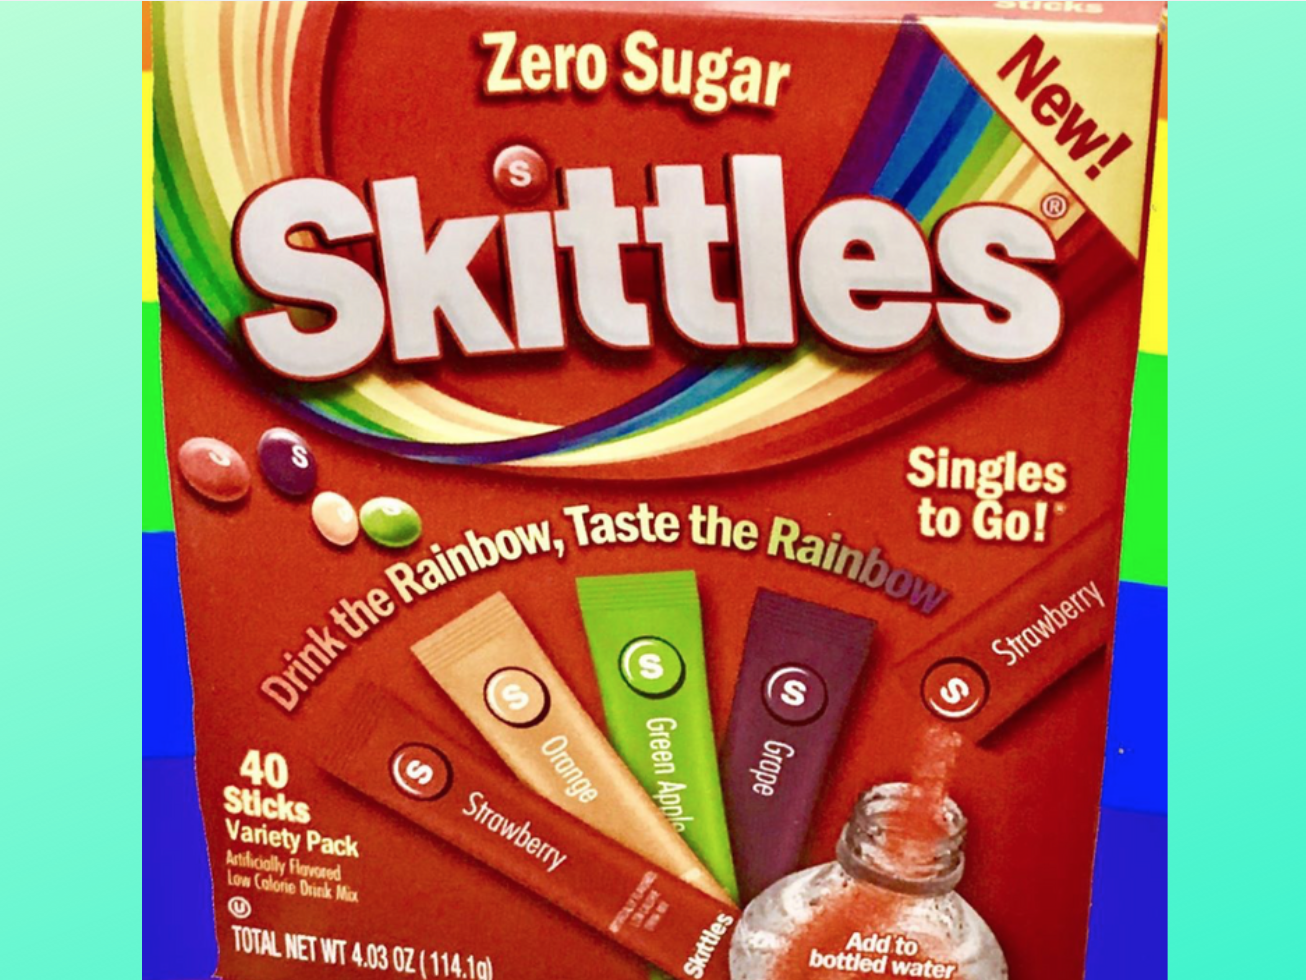 This New Skittles Singles Drink Mix Will Turn Your Water Into Candy